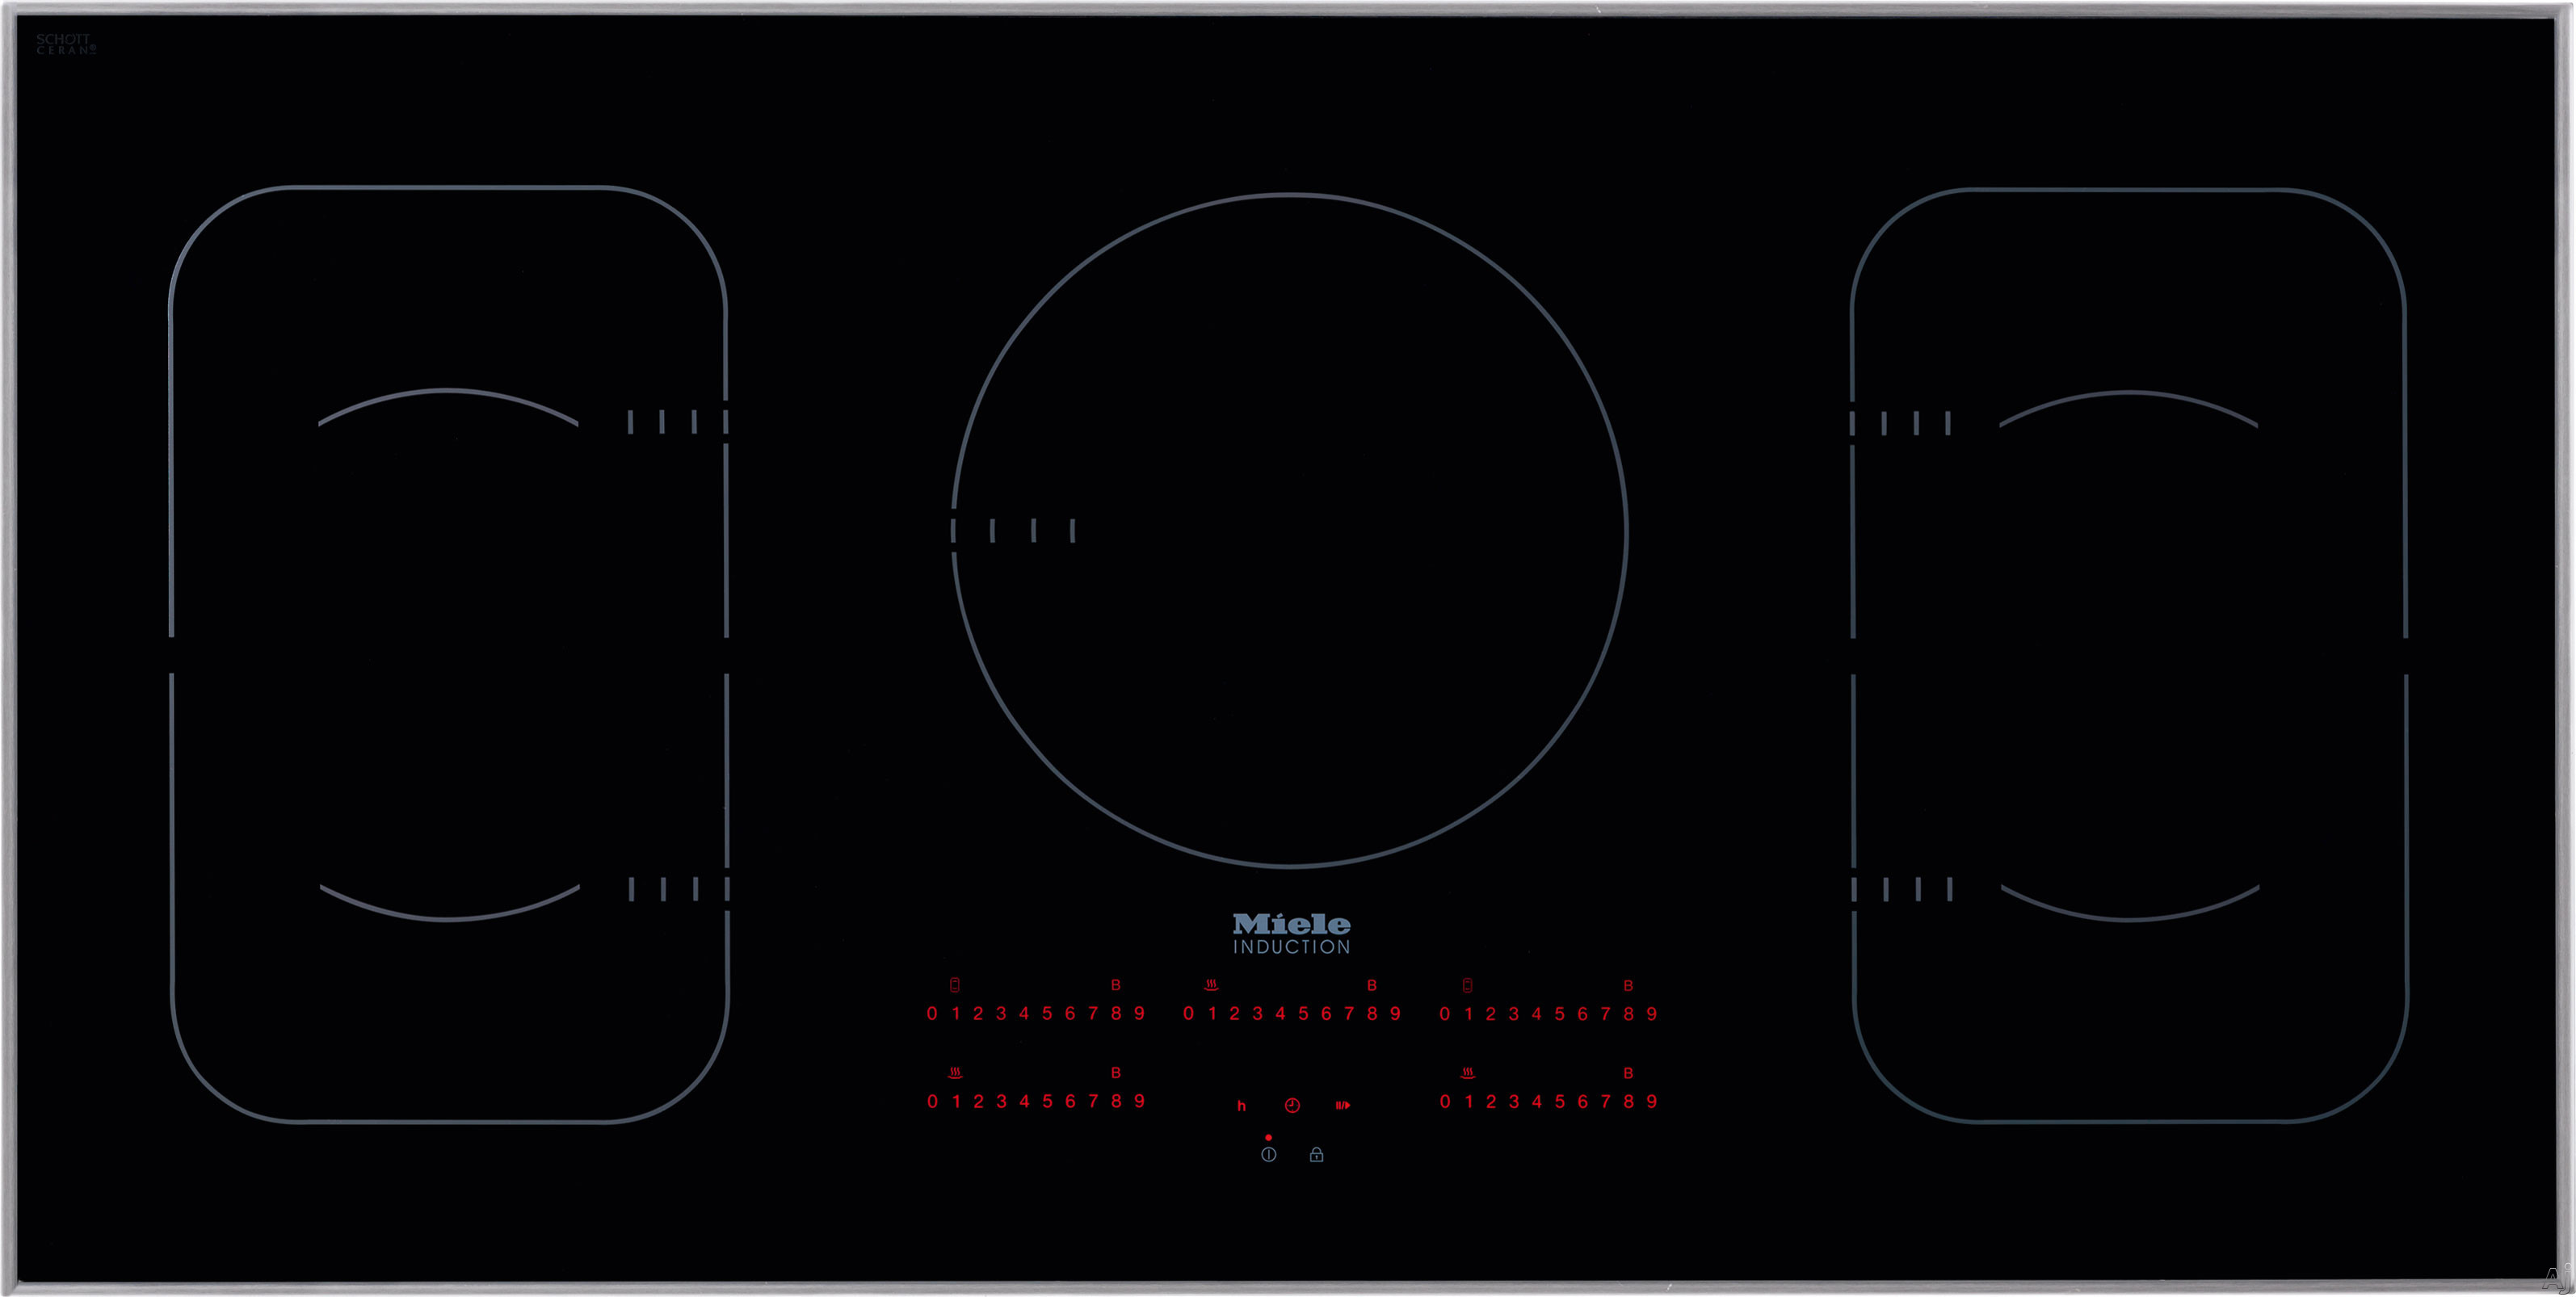 Miele KM6377 42 Inch Induction Cooktop with 5 Cooking Zones, Twin Booster Function, PowerFlex Technology, Con@ctivity 2.0 Cooktop/Hood Communication and Direct Selection Plus Control